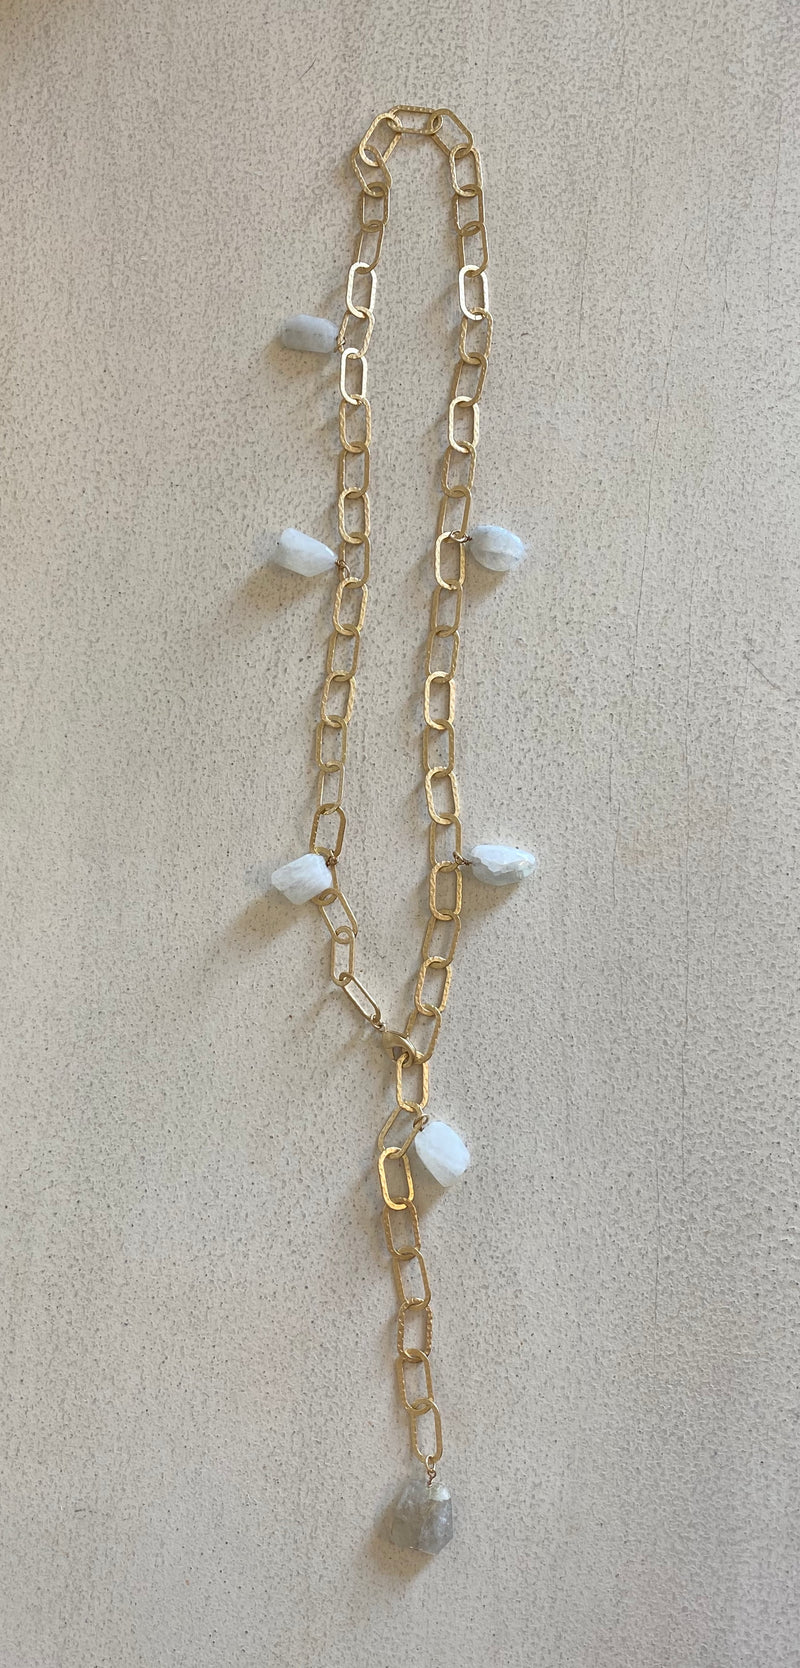 "18"" GOLD LINKS WITH PEARLS NECKLACE / BRACELET"